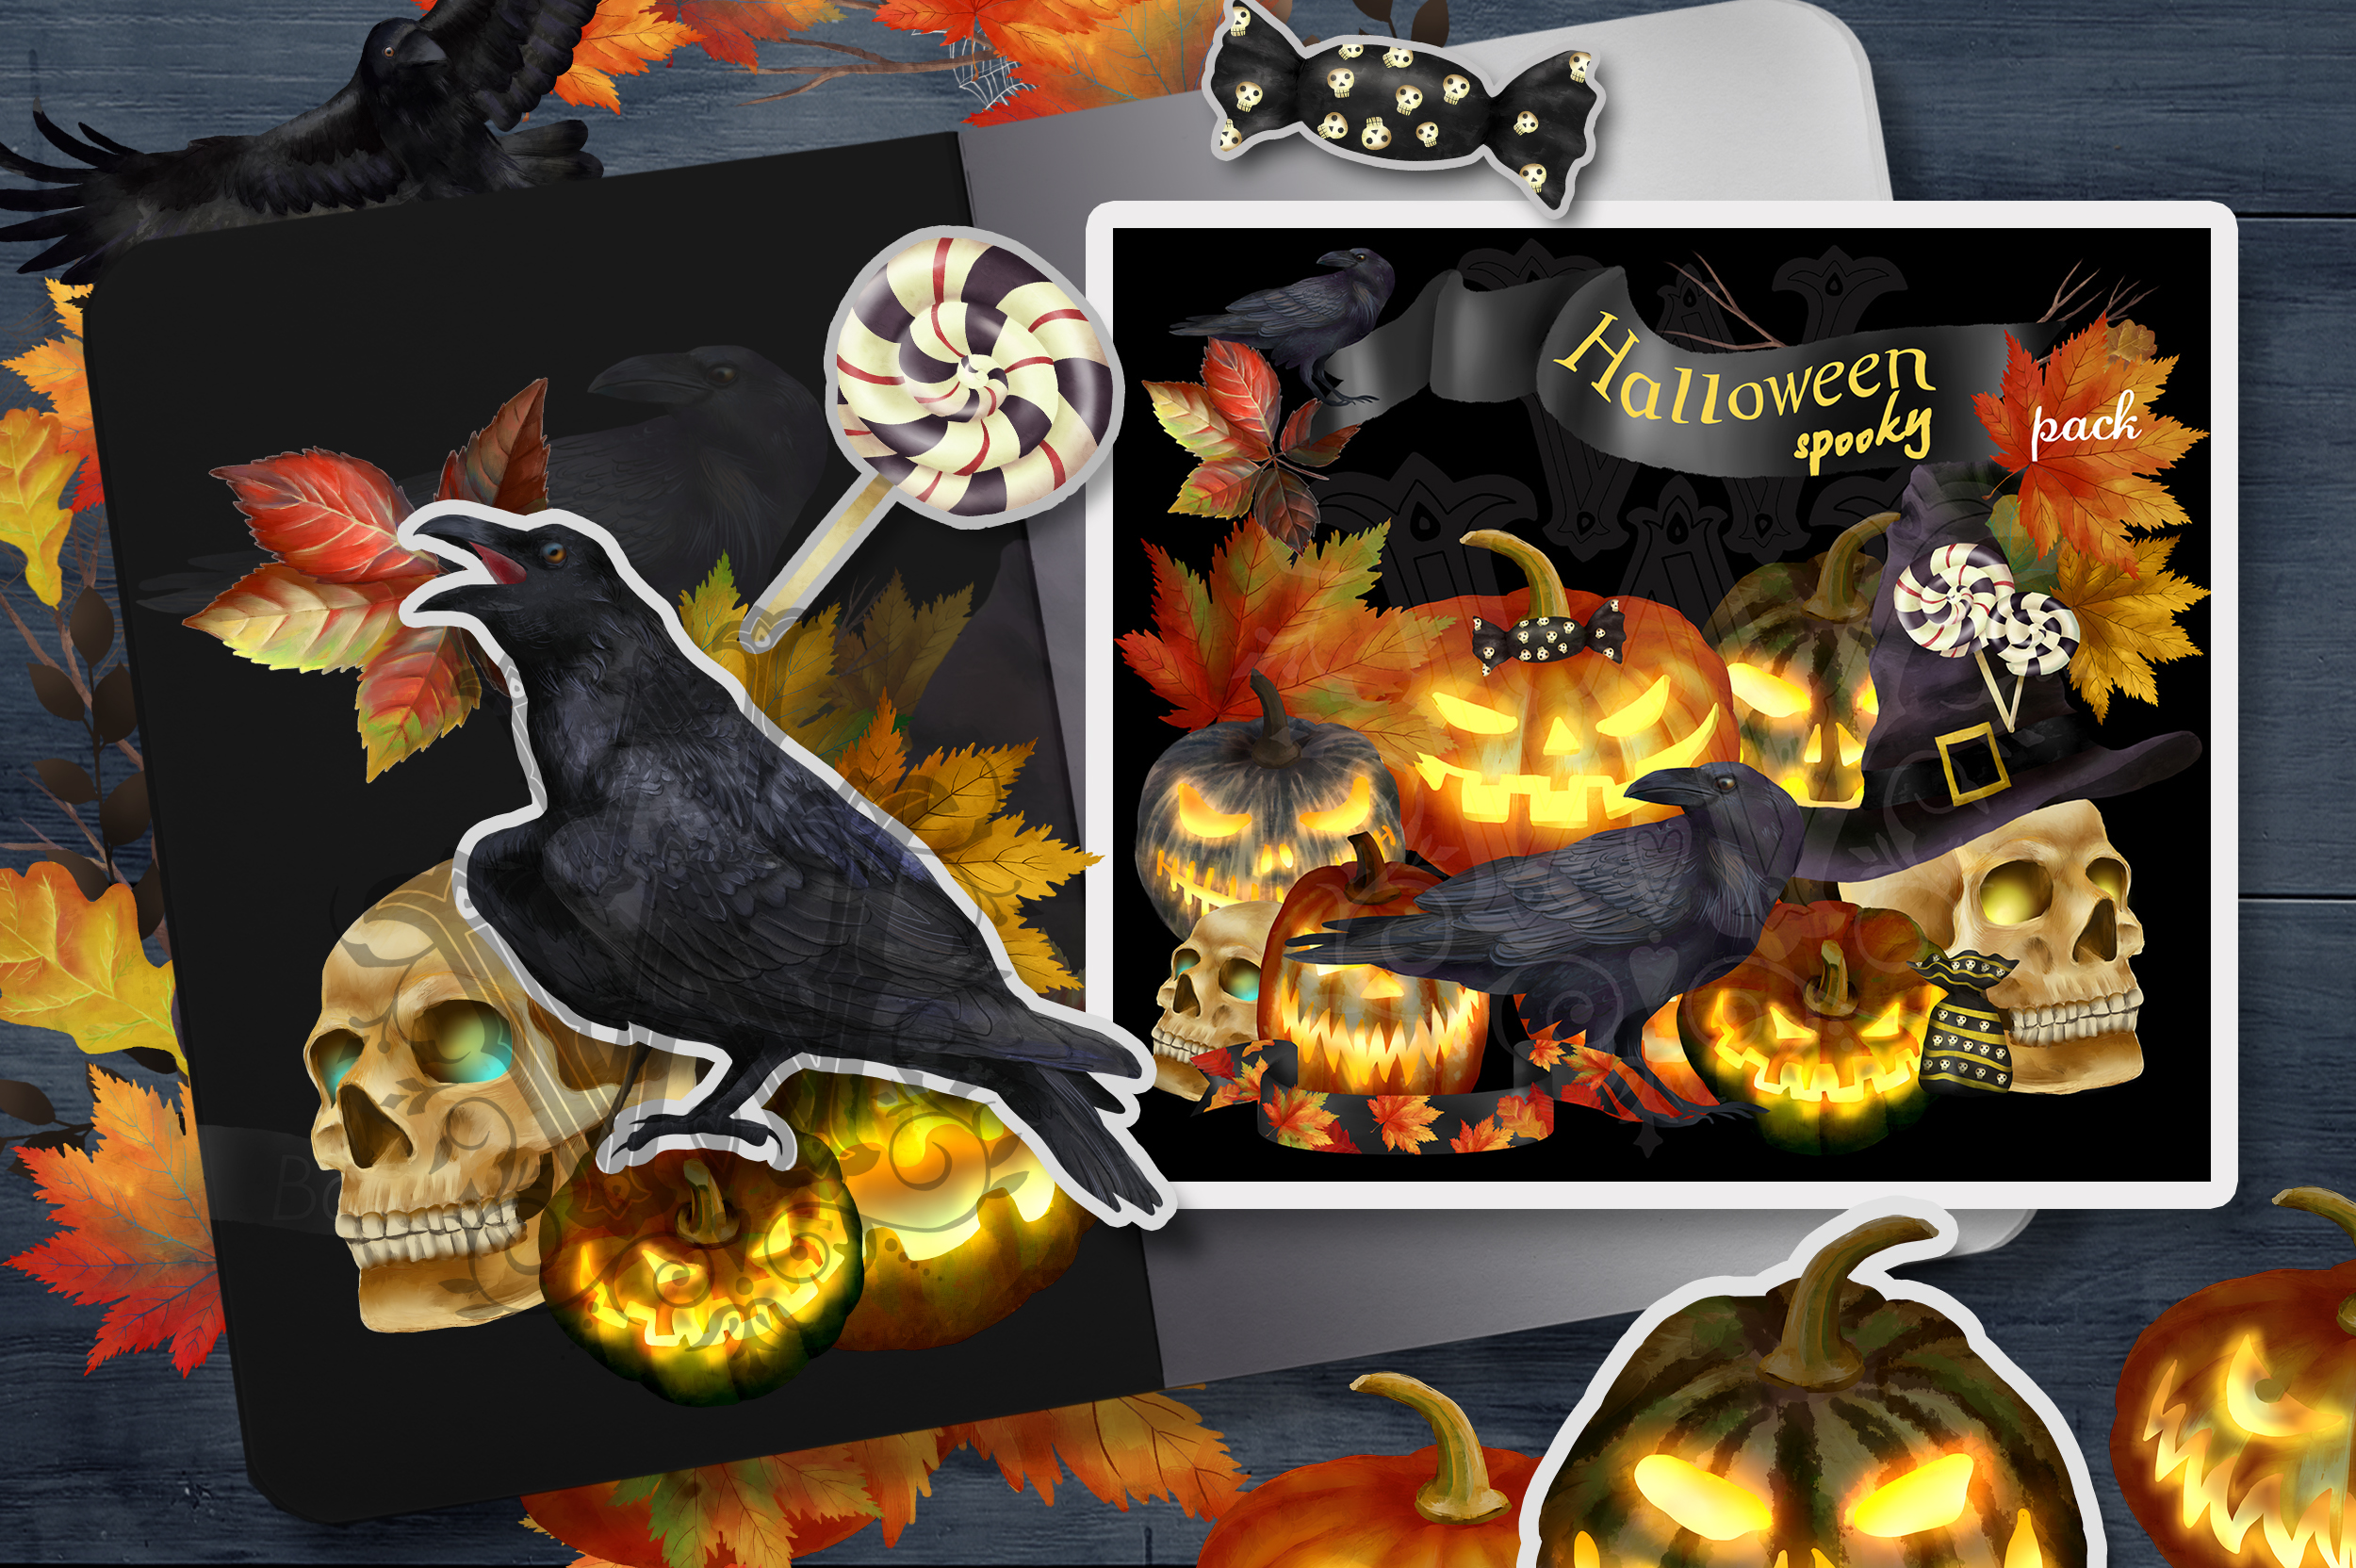 Spooky Halloween clipart with pumpkins, skull and ravens example image 1